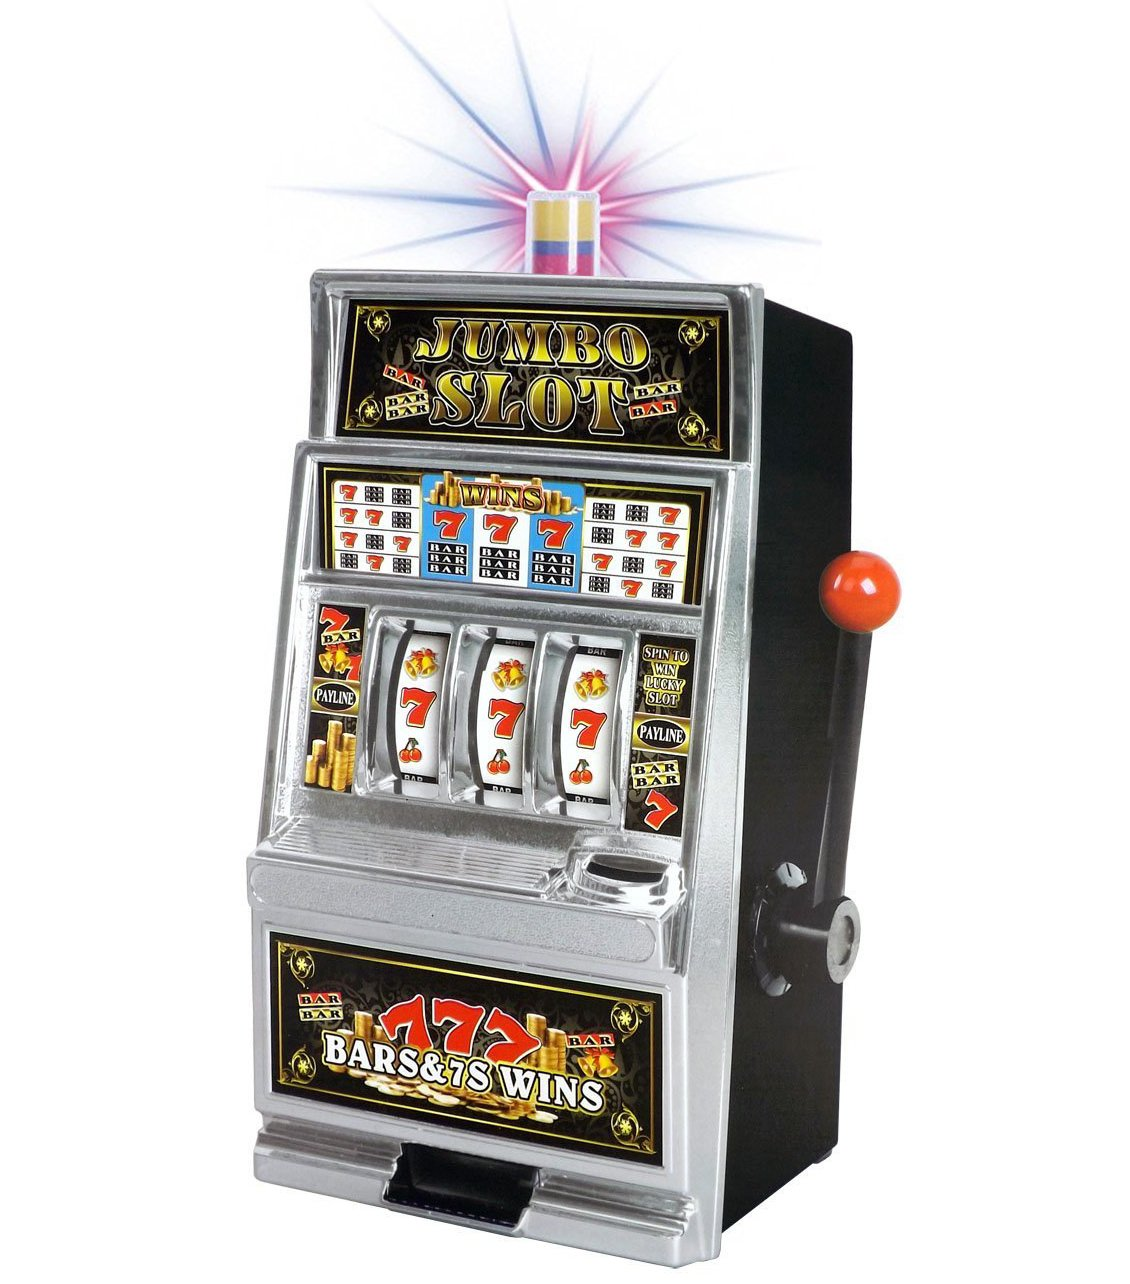 Come avere slot machine